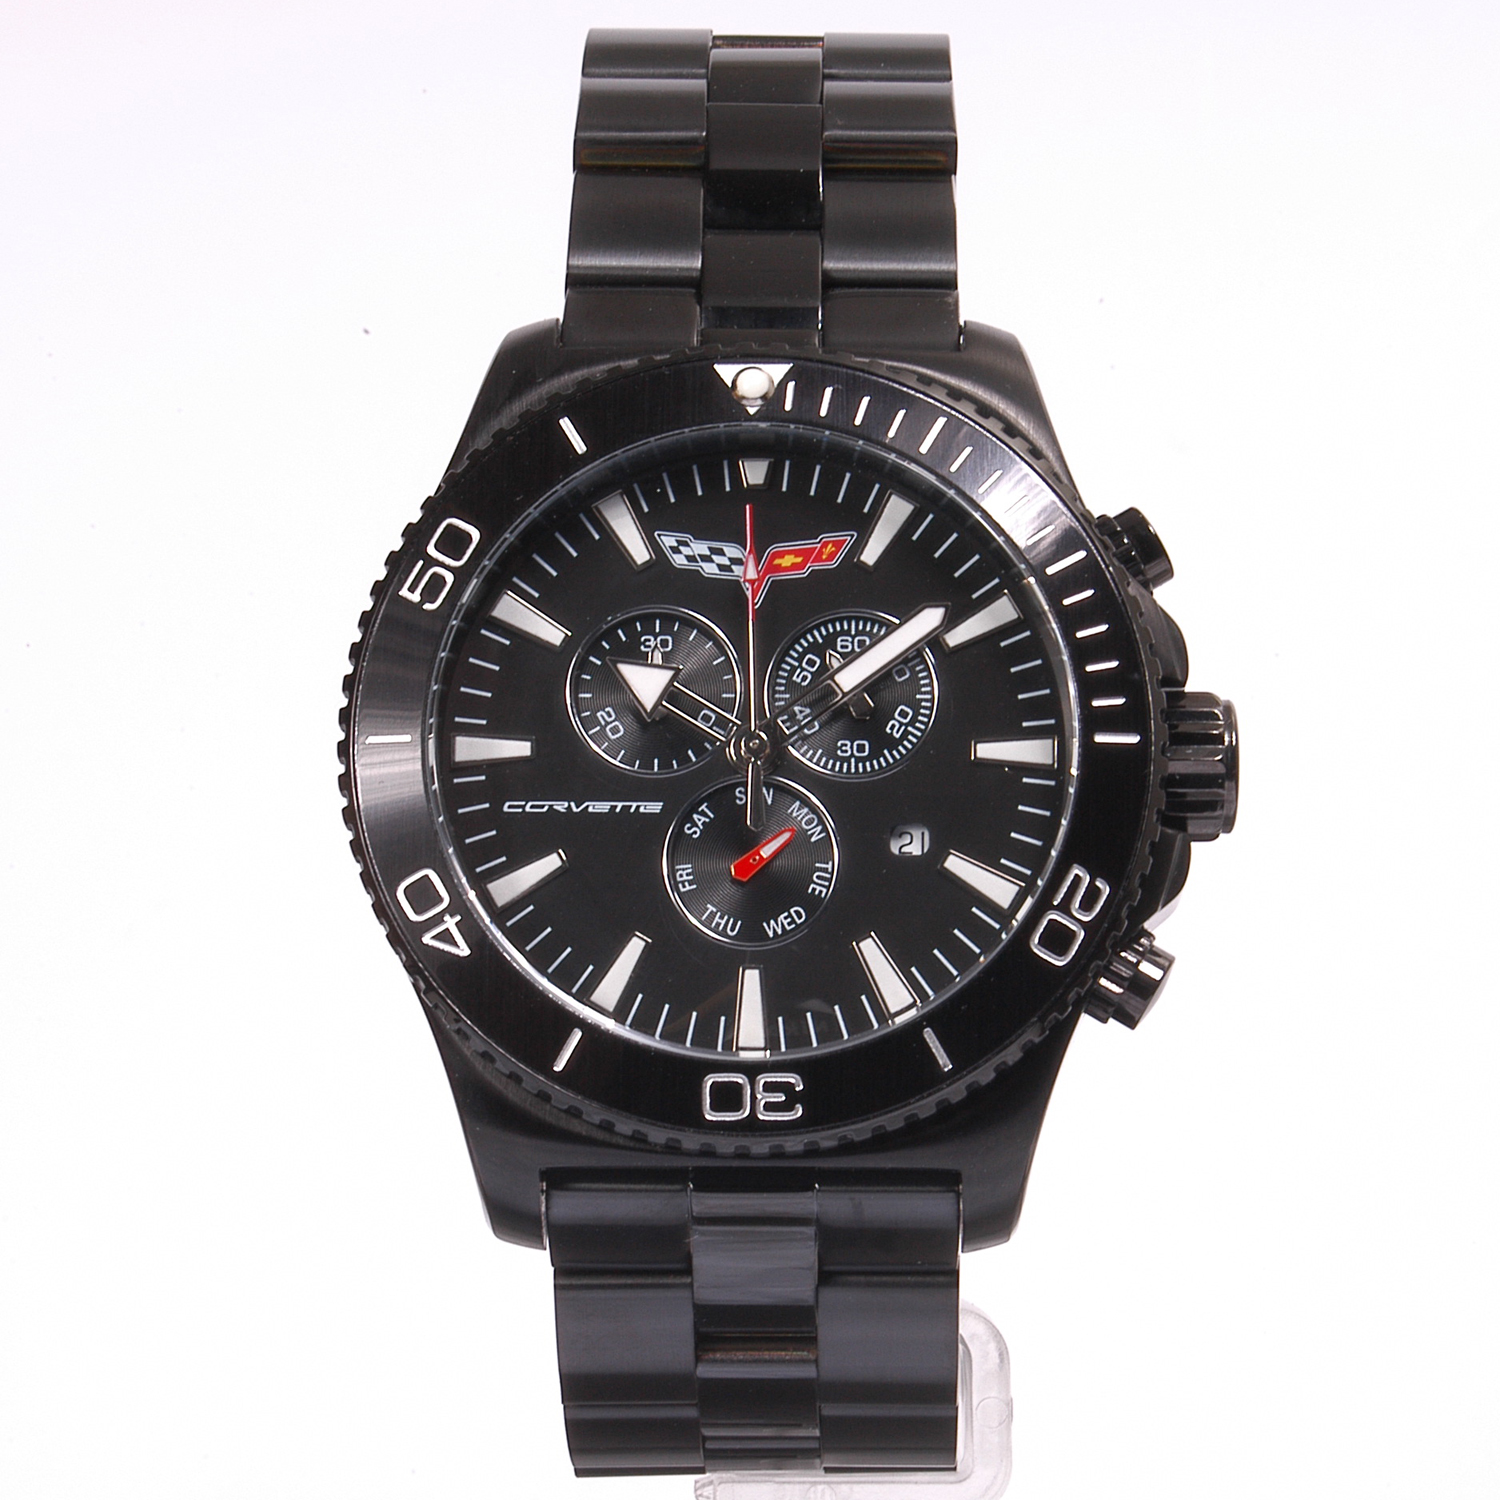 AKCR215-MIPB Corvette 215 Swiss Chrono Collection IP Black Dial